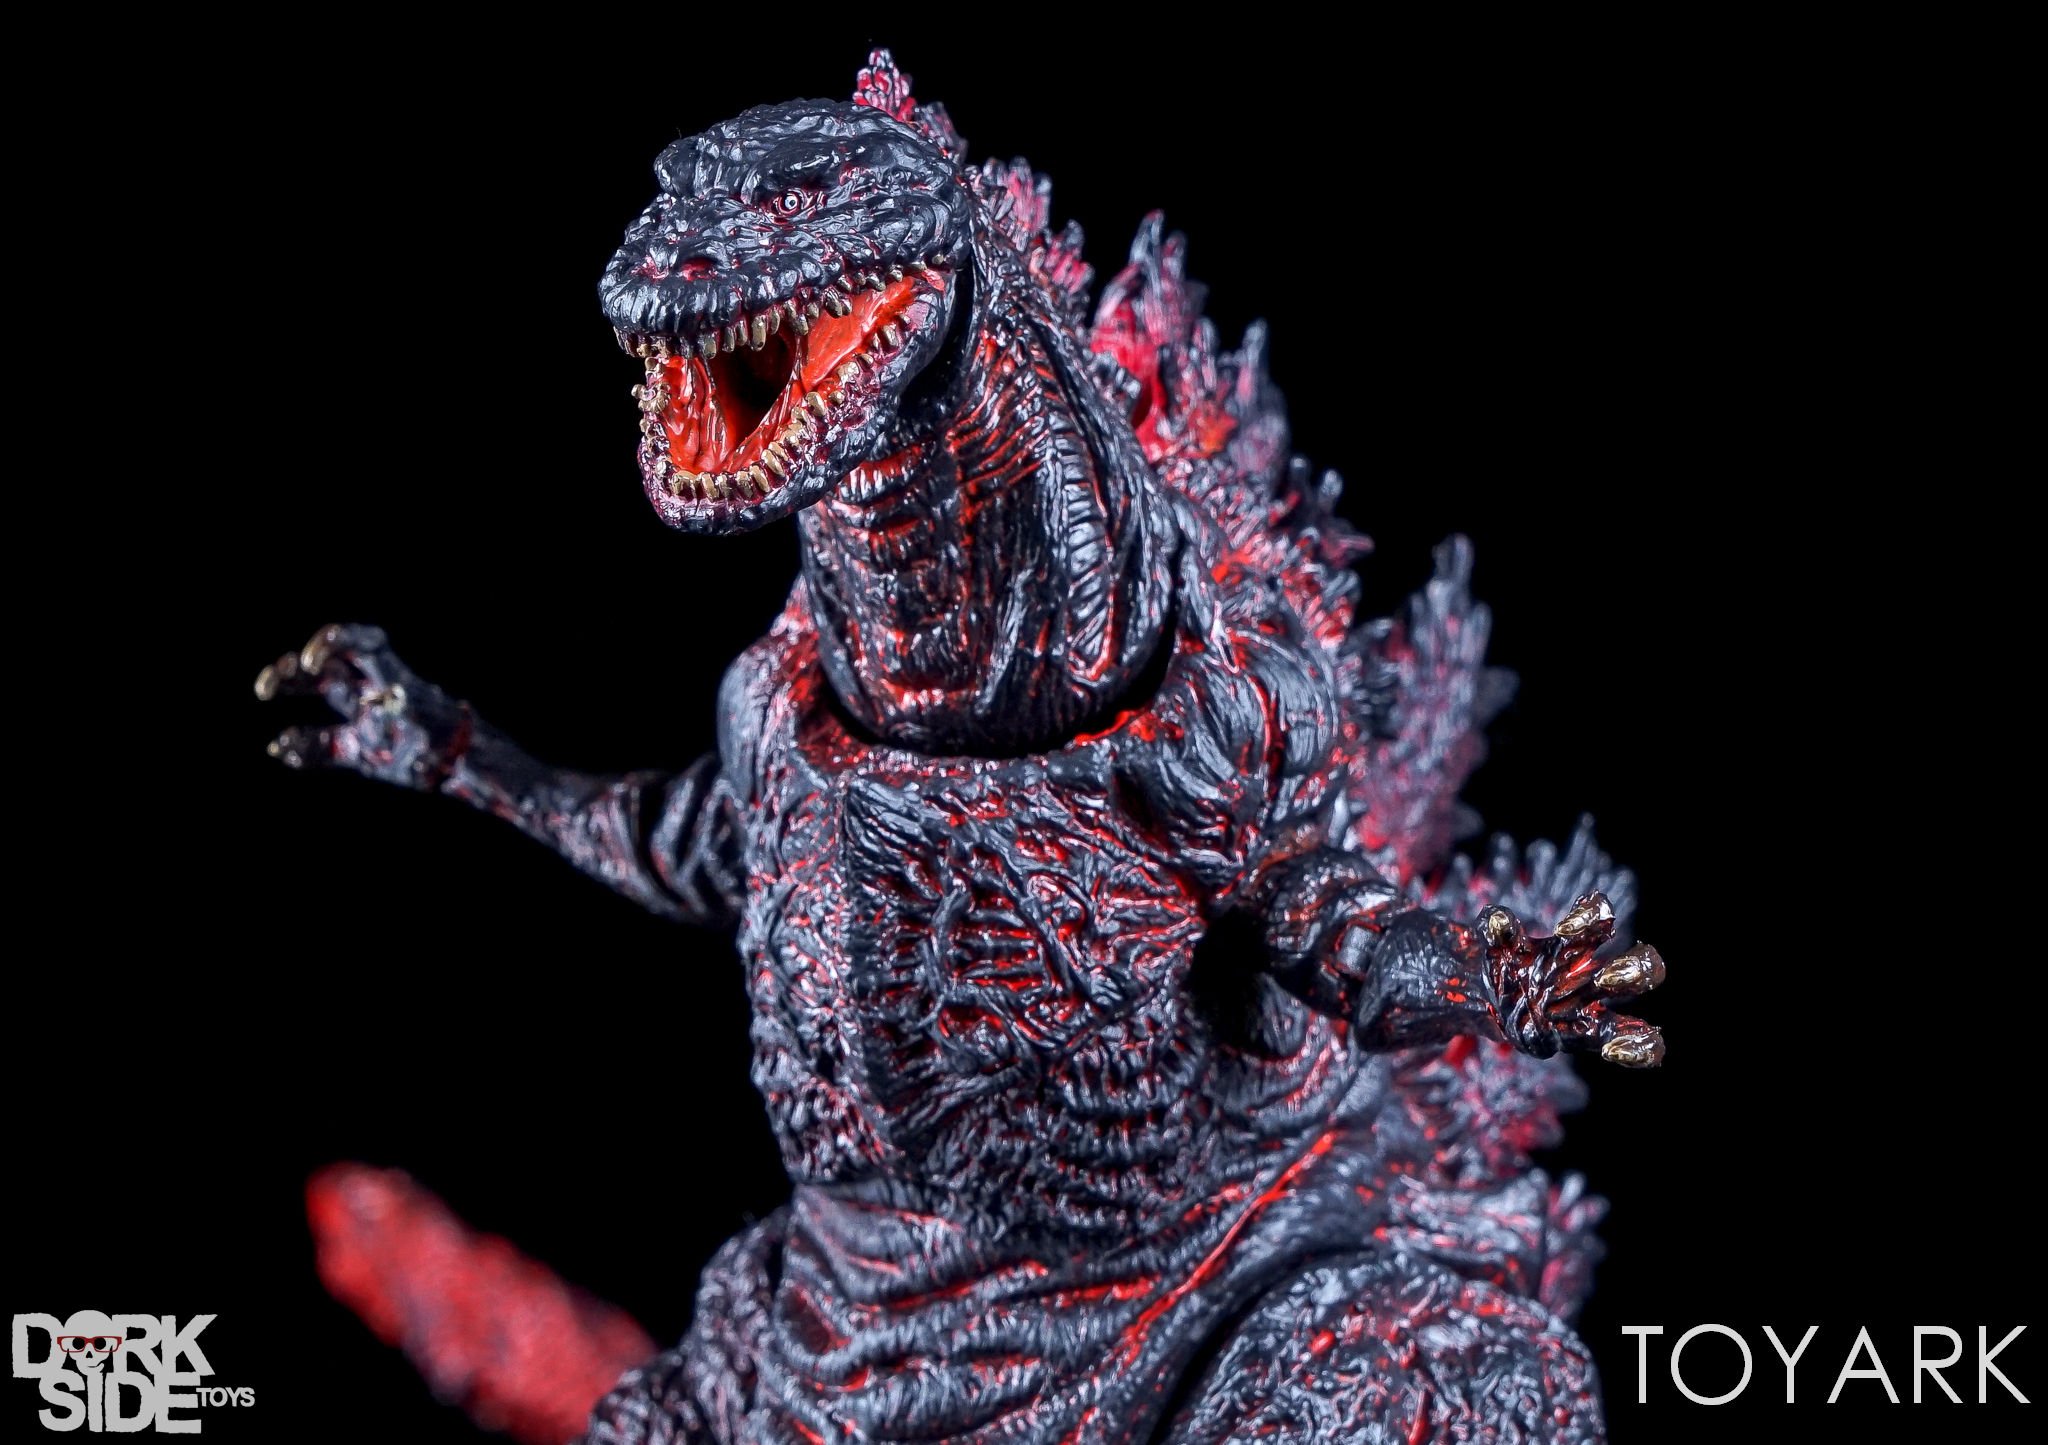 http://news.toyark.com/wp-content/uploads/sites/4/2017/05/Shin-Godzilla-Figure-NECA-020.jpg